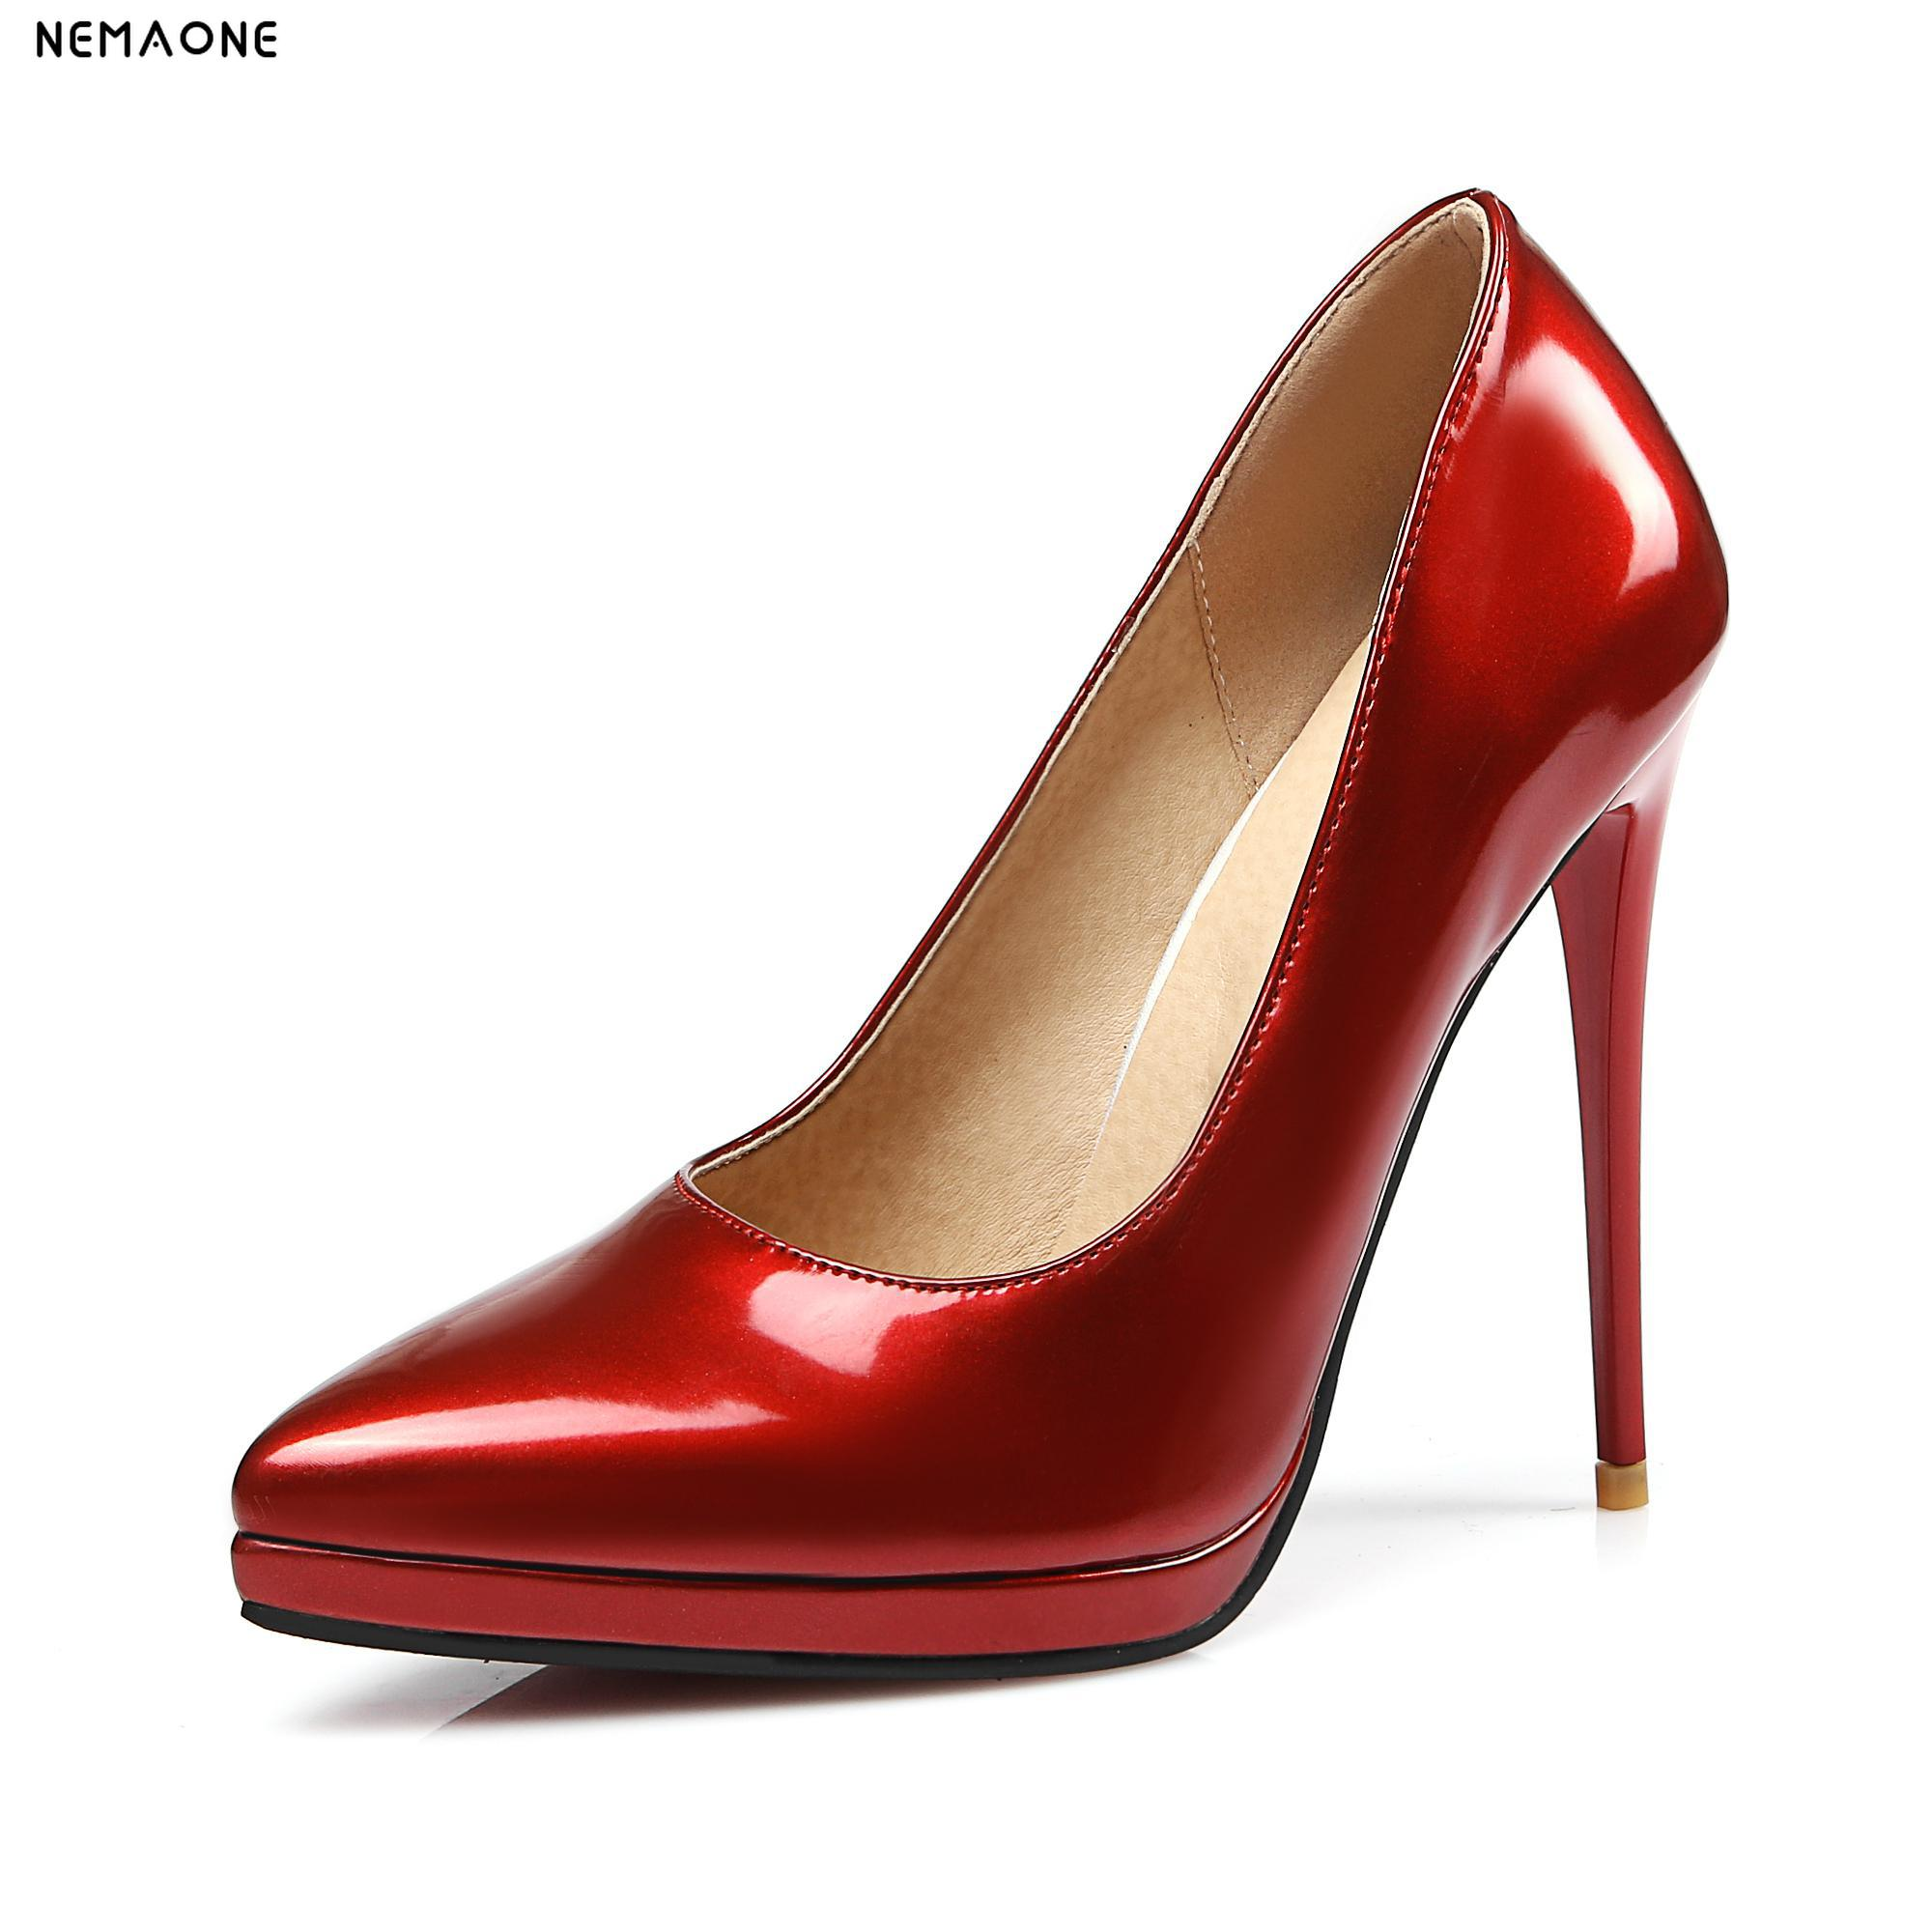 NEMAONE Classic Pumps Women Shoes Party Thin High Heel Pumps Pointed Toe Summer 2017 Hot Spring Ladies women Pumps new 2017 spring summer women shoes pointed toe high quality brand fashion womens flats ladies plus size 41 sweet flock t179